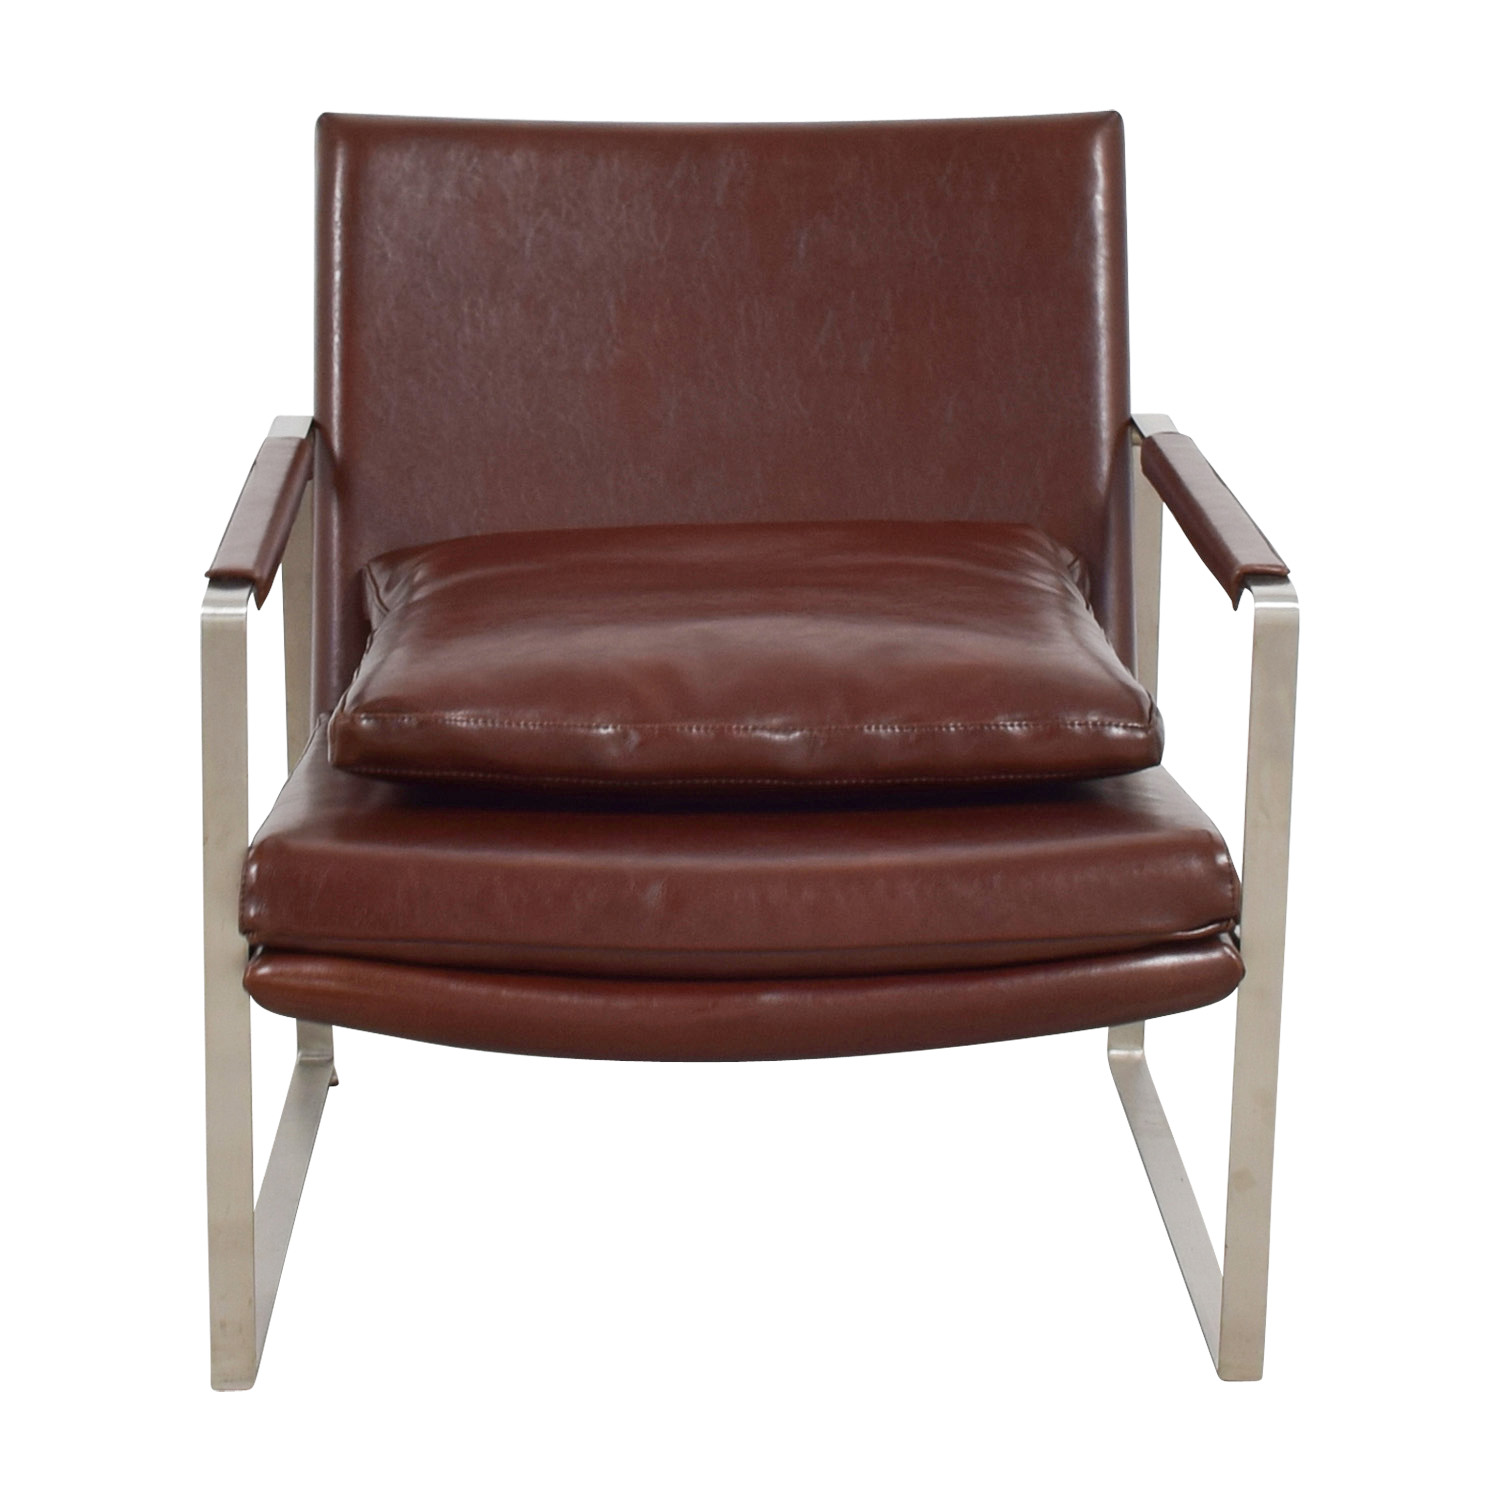 Chair Price 80 Off Sohoconcept Soho Concept Zara Brown And Chrome Accent Chair Chairs